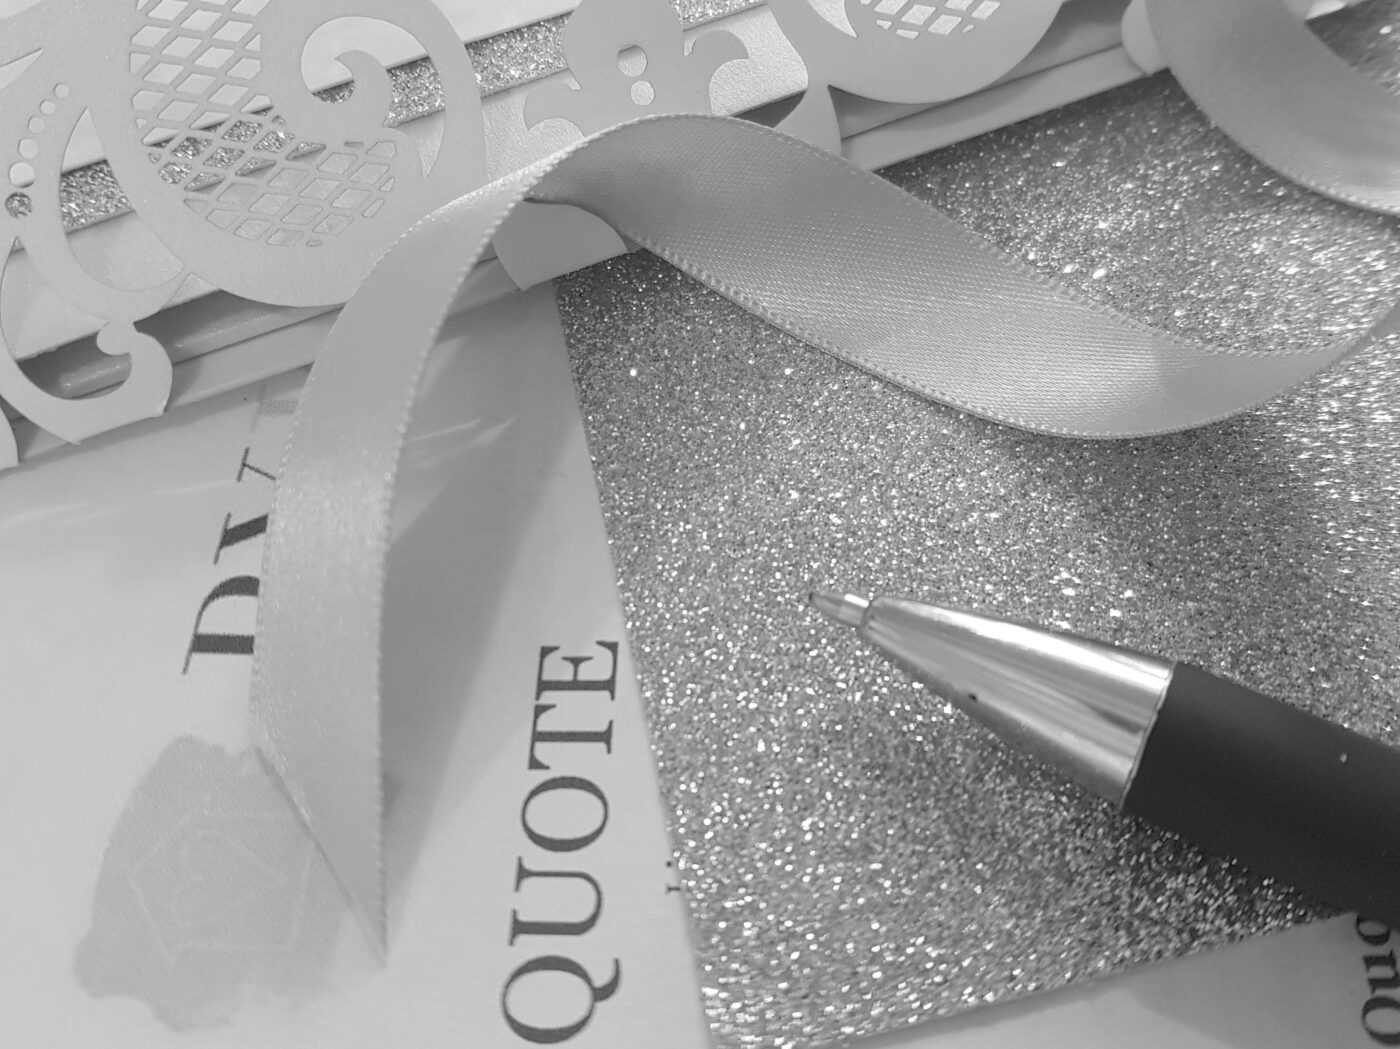 Quoting for handmade wedding stationery